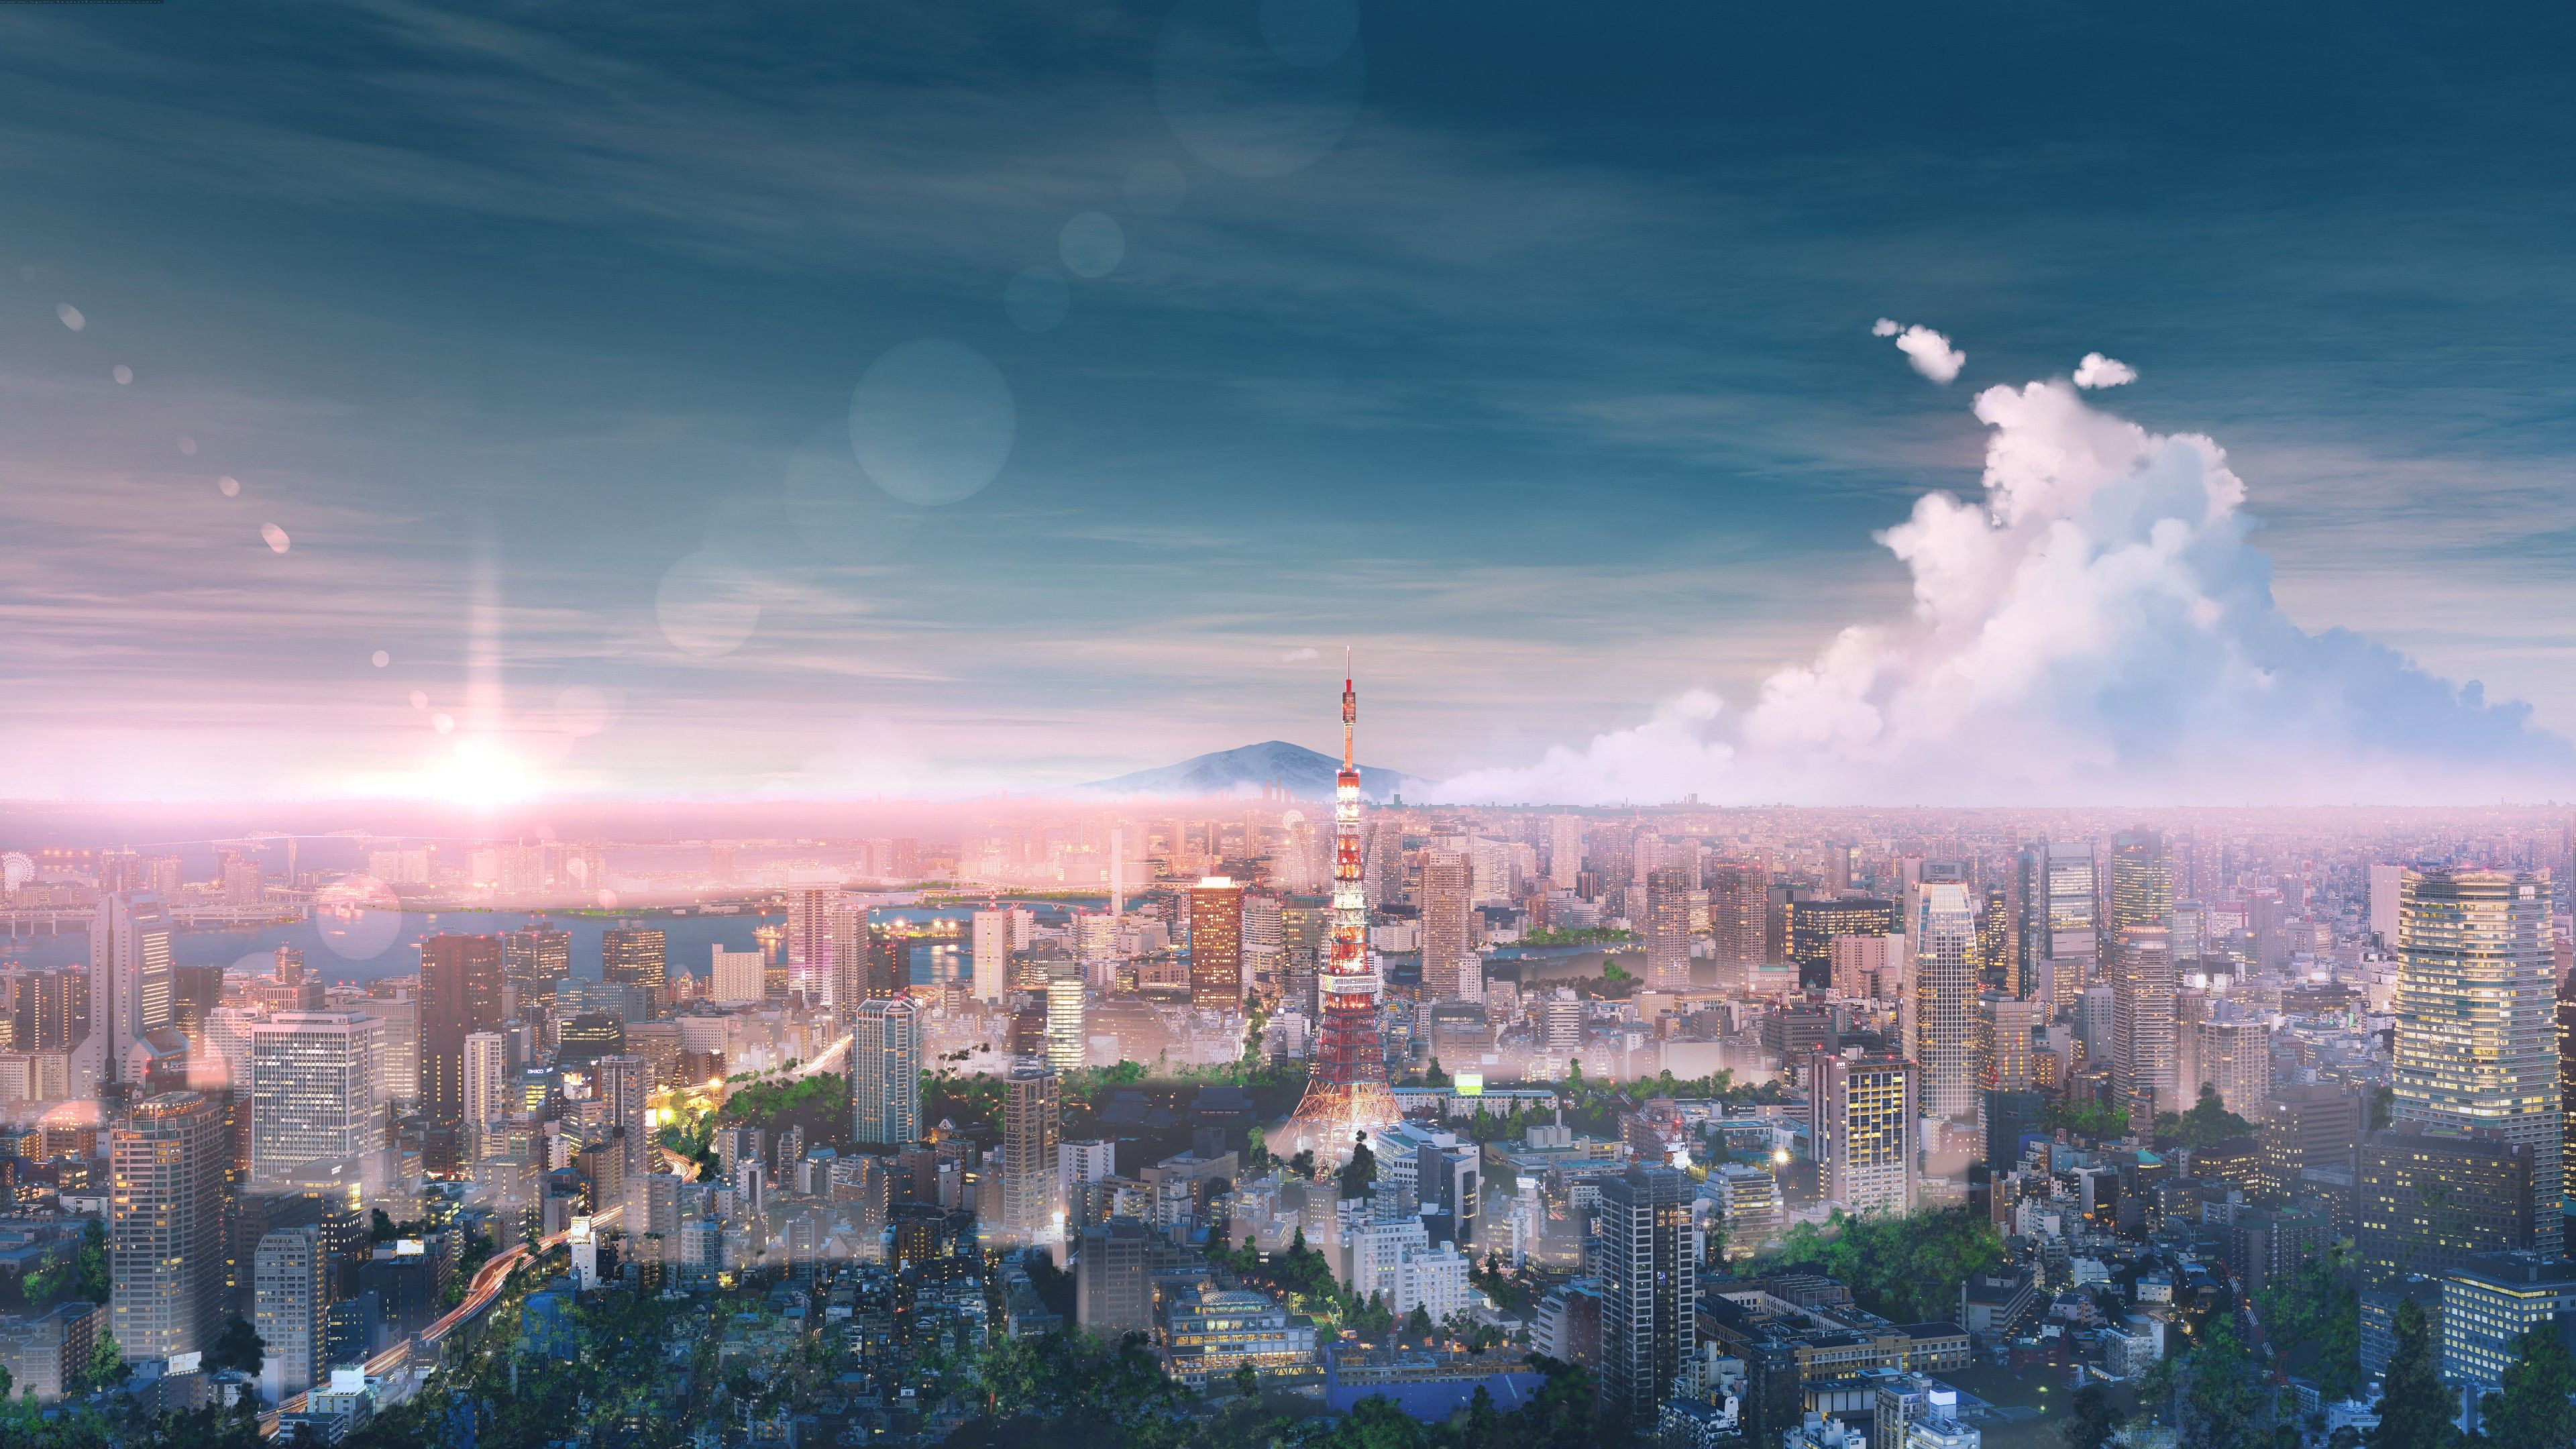 Tokyo Cityscape Anime Tokyo Wallpapers Hd Wallpapers Digital Art Wallpapers Cityscape Wallpapers Artwork Wall In 2020 Cityscape Wallpaper Anime Wallpaper Cityscape